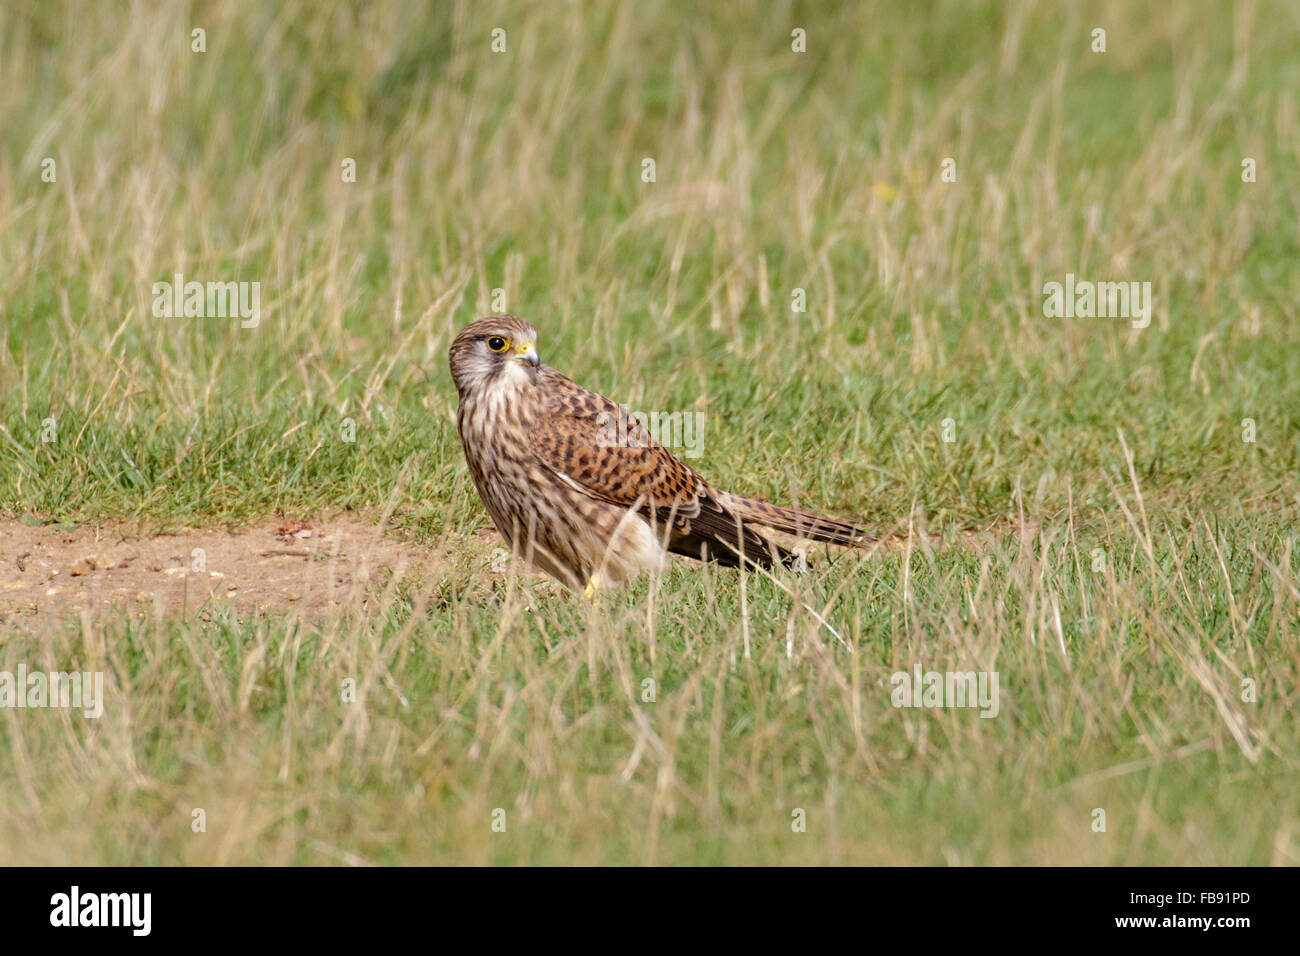 Female Common Kestrel (Falco tinnunculus) foraging for insects on the ground. - Stock Image